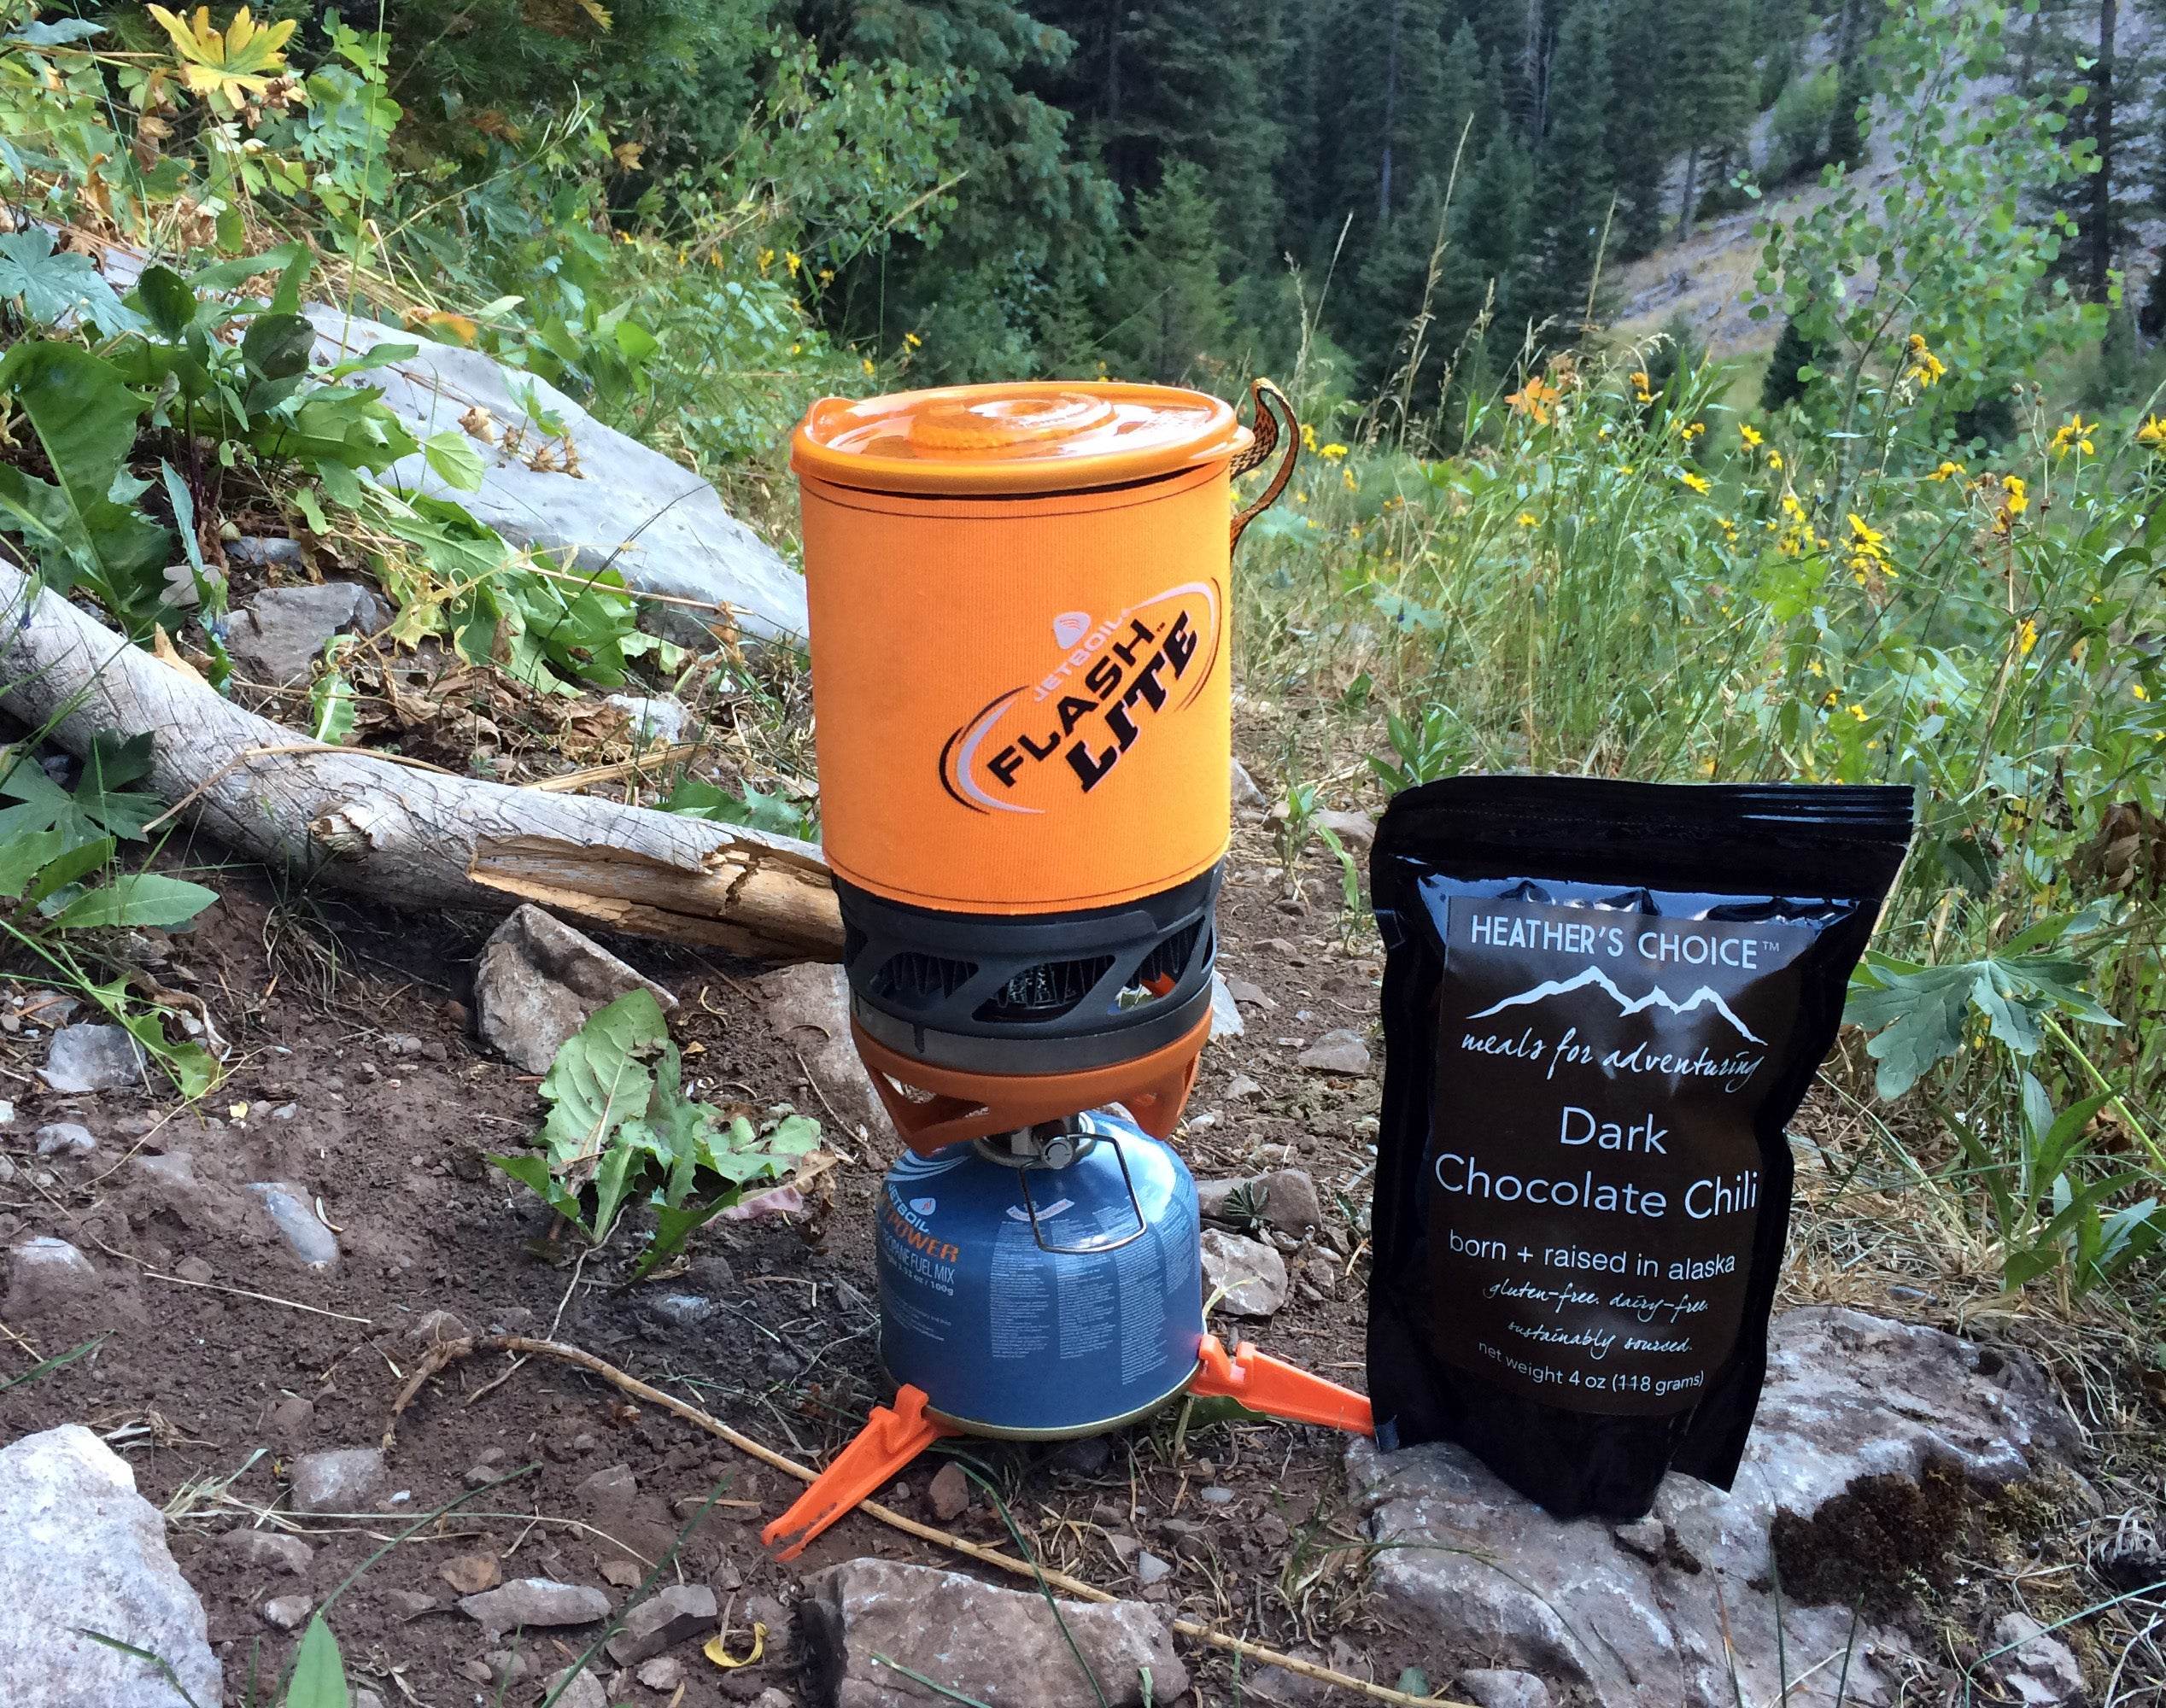 Camp Stove and Dehydrated Meal